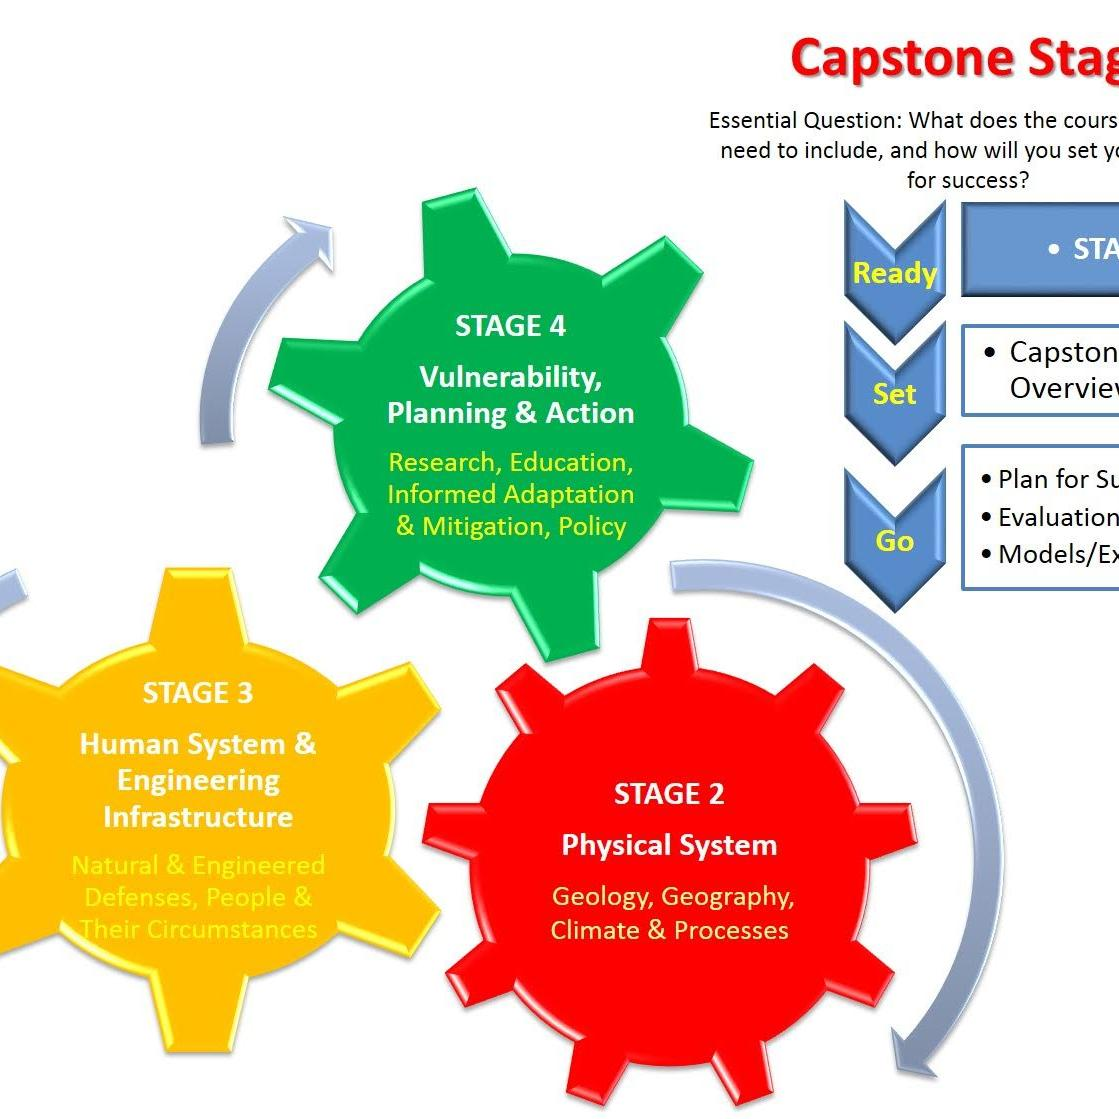 instructional design capstone project The final capstone is a culminating project that utilizes a set of skills that demonstrate maturity and professionalism in strategic thinking in instructional design and learning analytics and management.